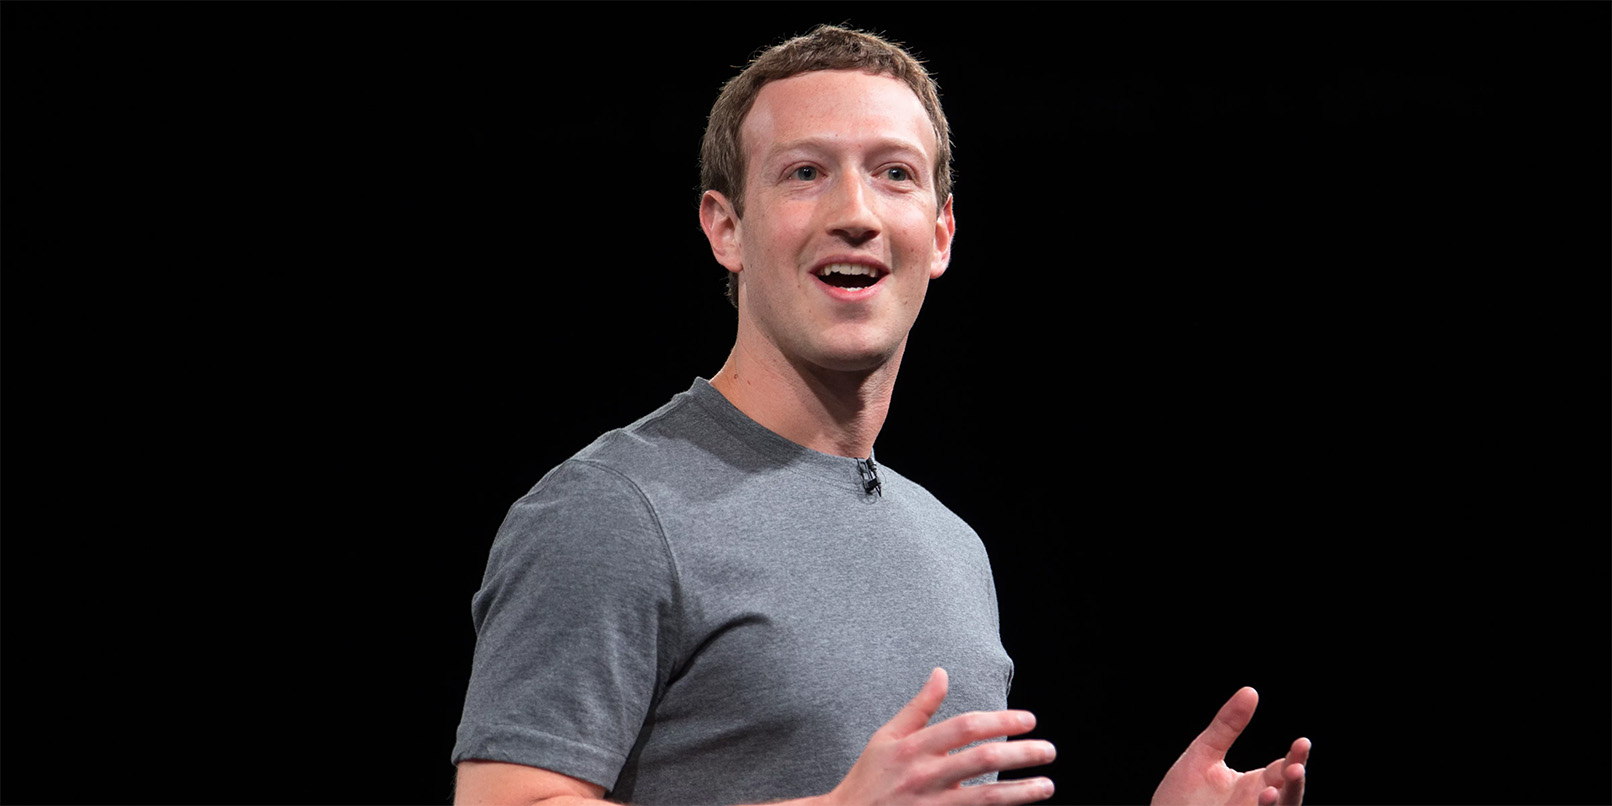 Who will Mark Zuckerberg choose to voice his home ... Mark Zuckerberg